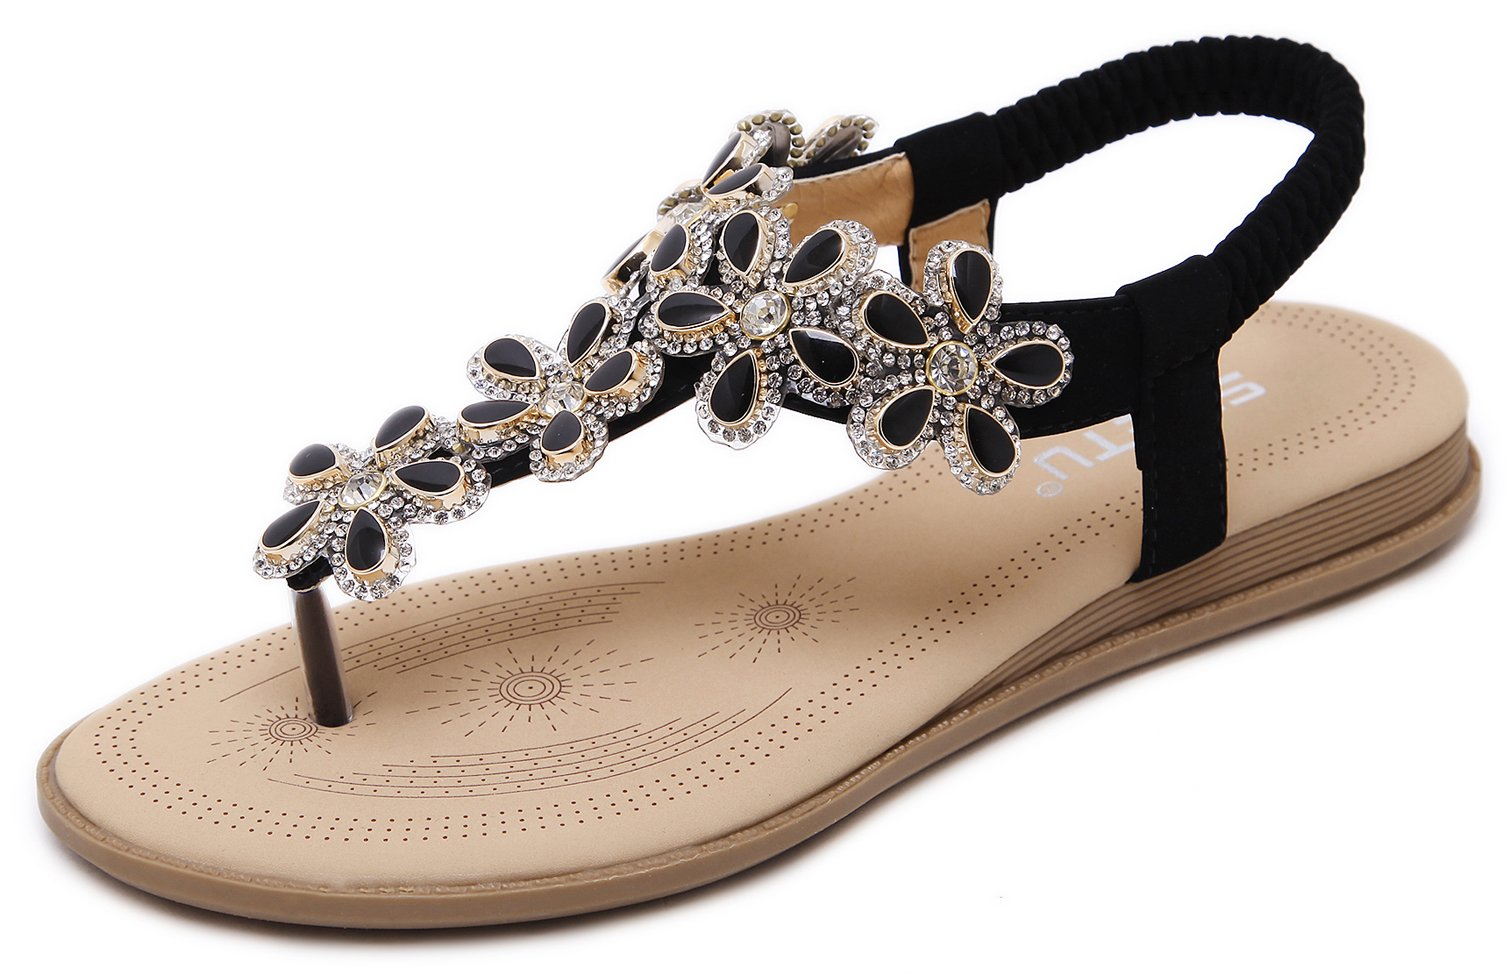 Women's Glitter Sandals, Bohemian Summer T-Strap Flat Thongs, Mysterious Black Floral Rhinestone Jewelry Gem, Open Toe Herringbone Comfy T Strap Shoes for Dressy Casual Jeans Daily Wear Beach Holiday